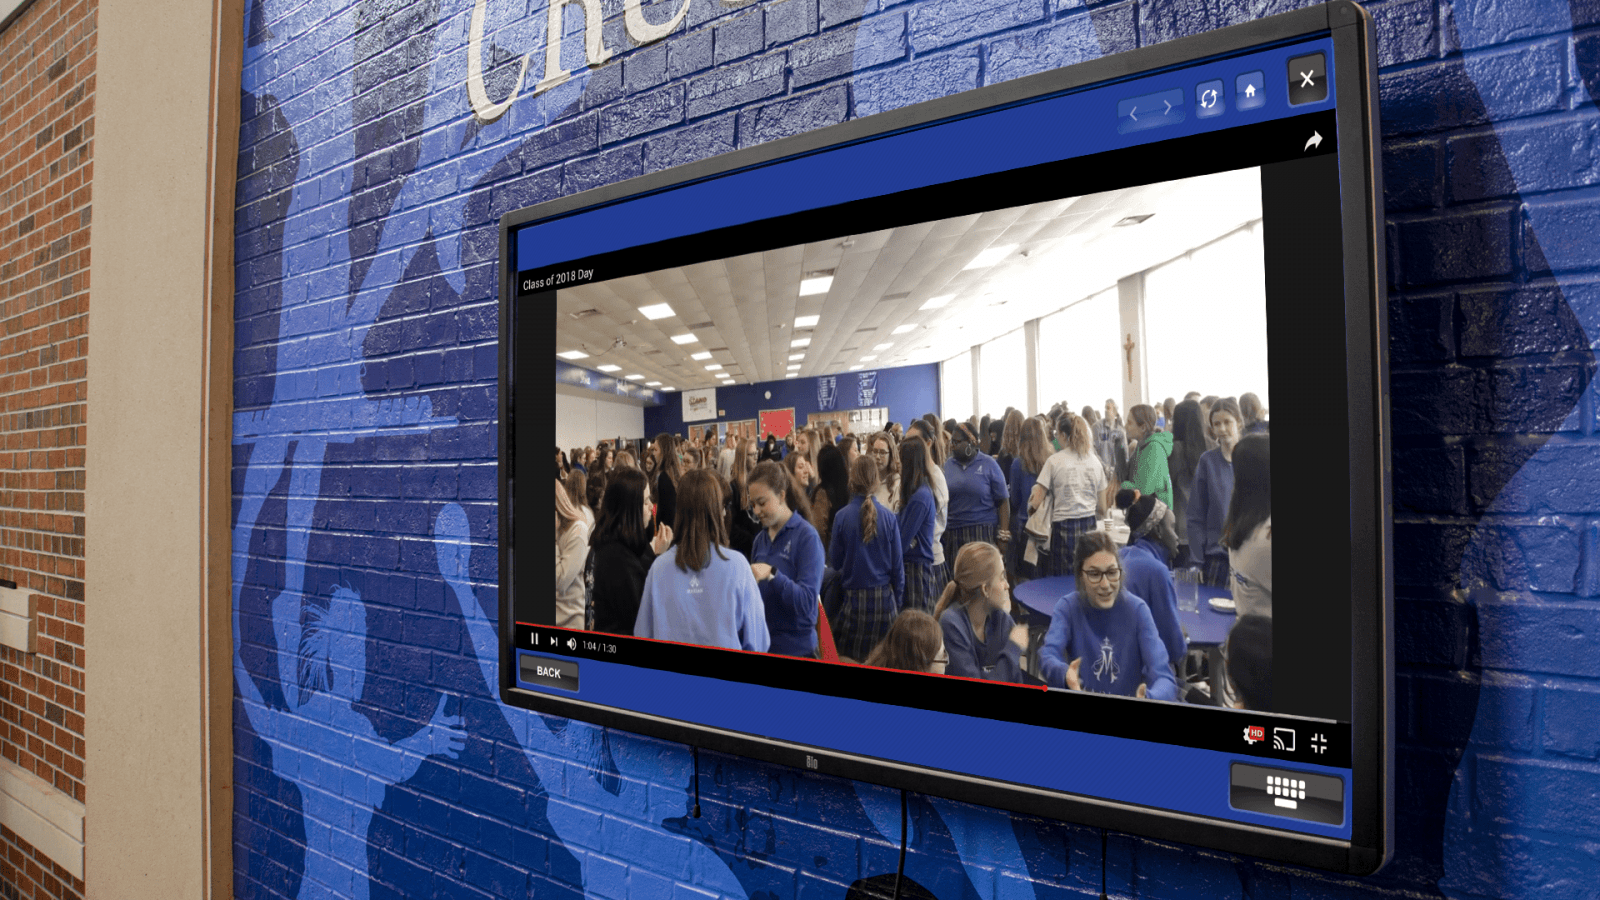 Marian High School's Digital Trophy Case allows visitors, students, and alumni to explore the school's activities through video and images.